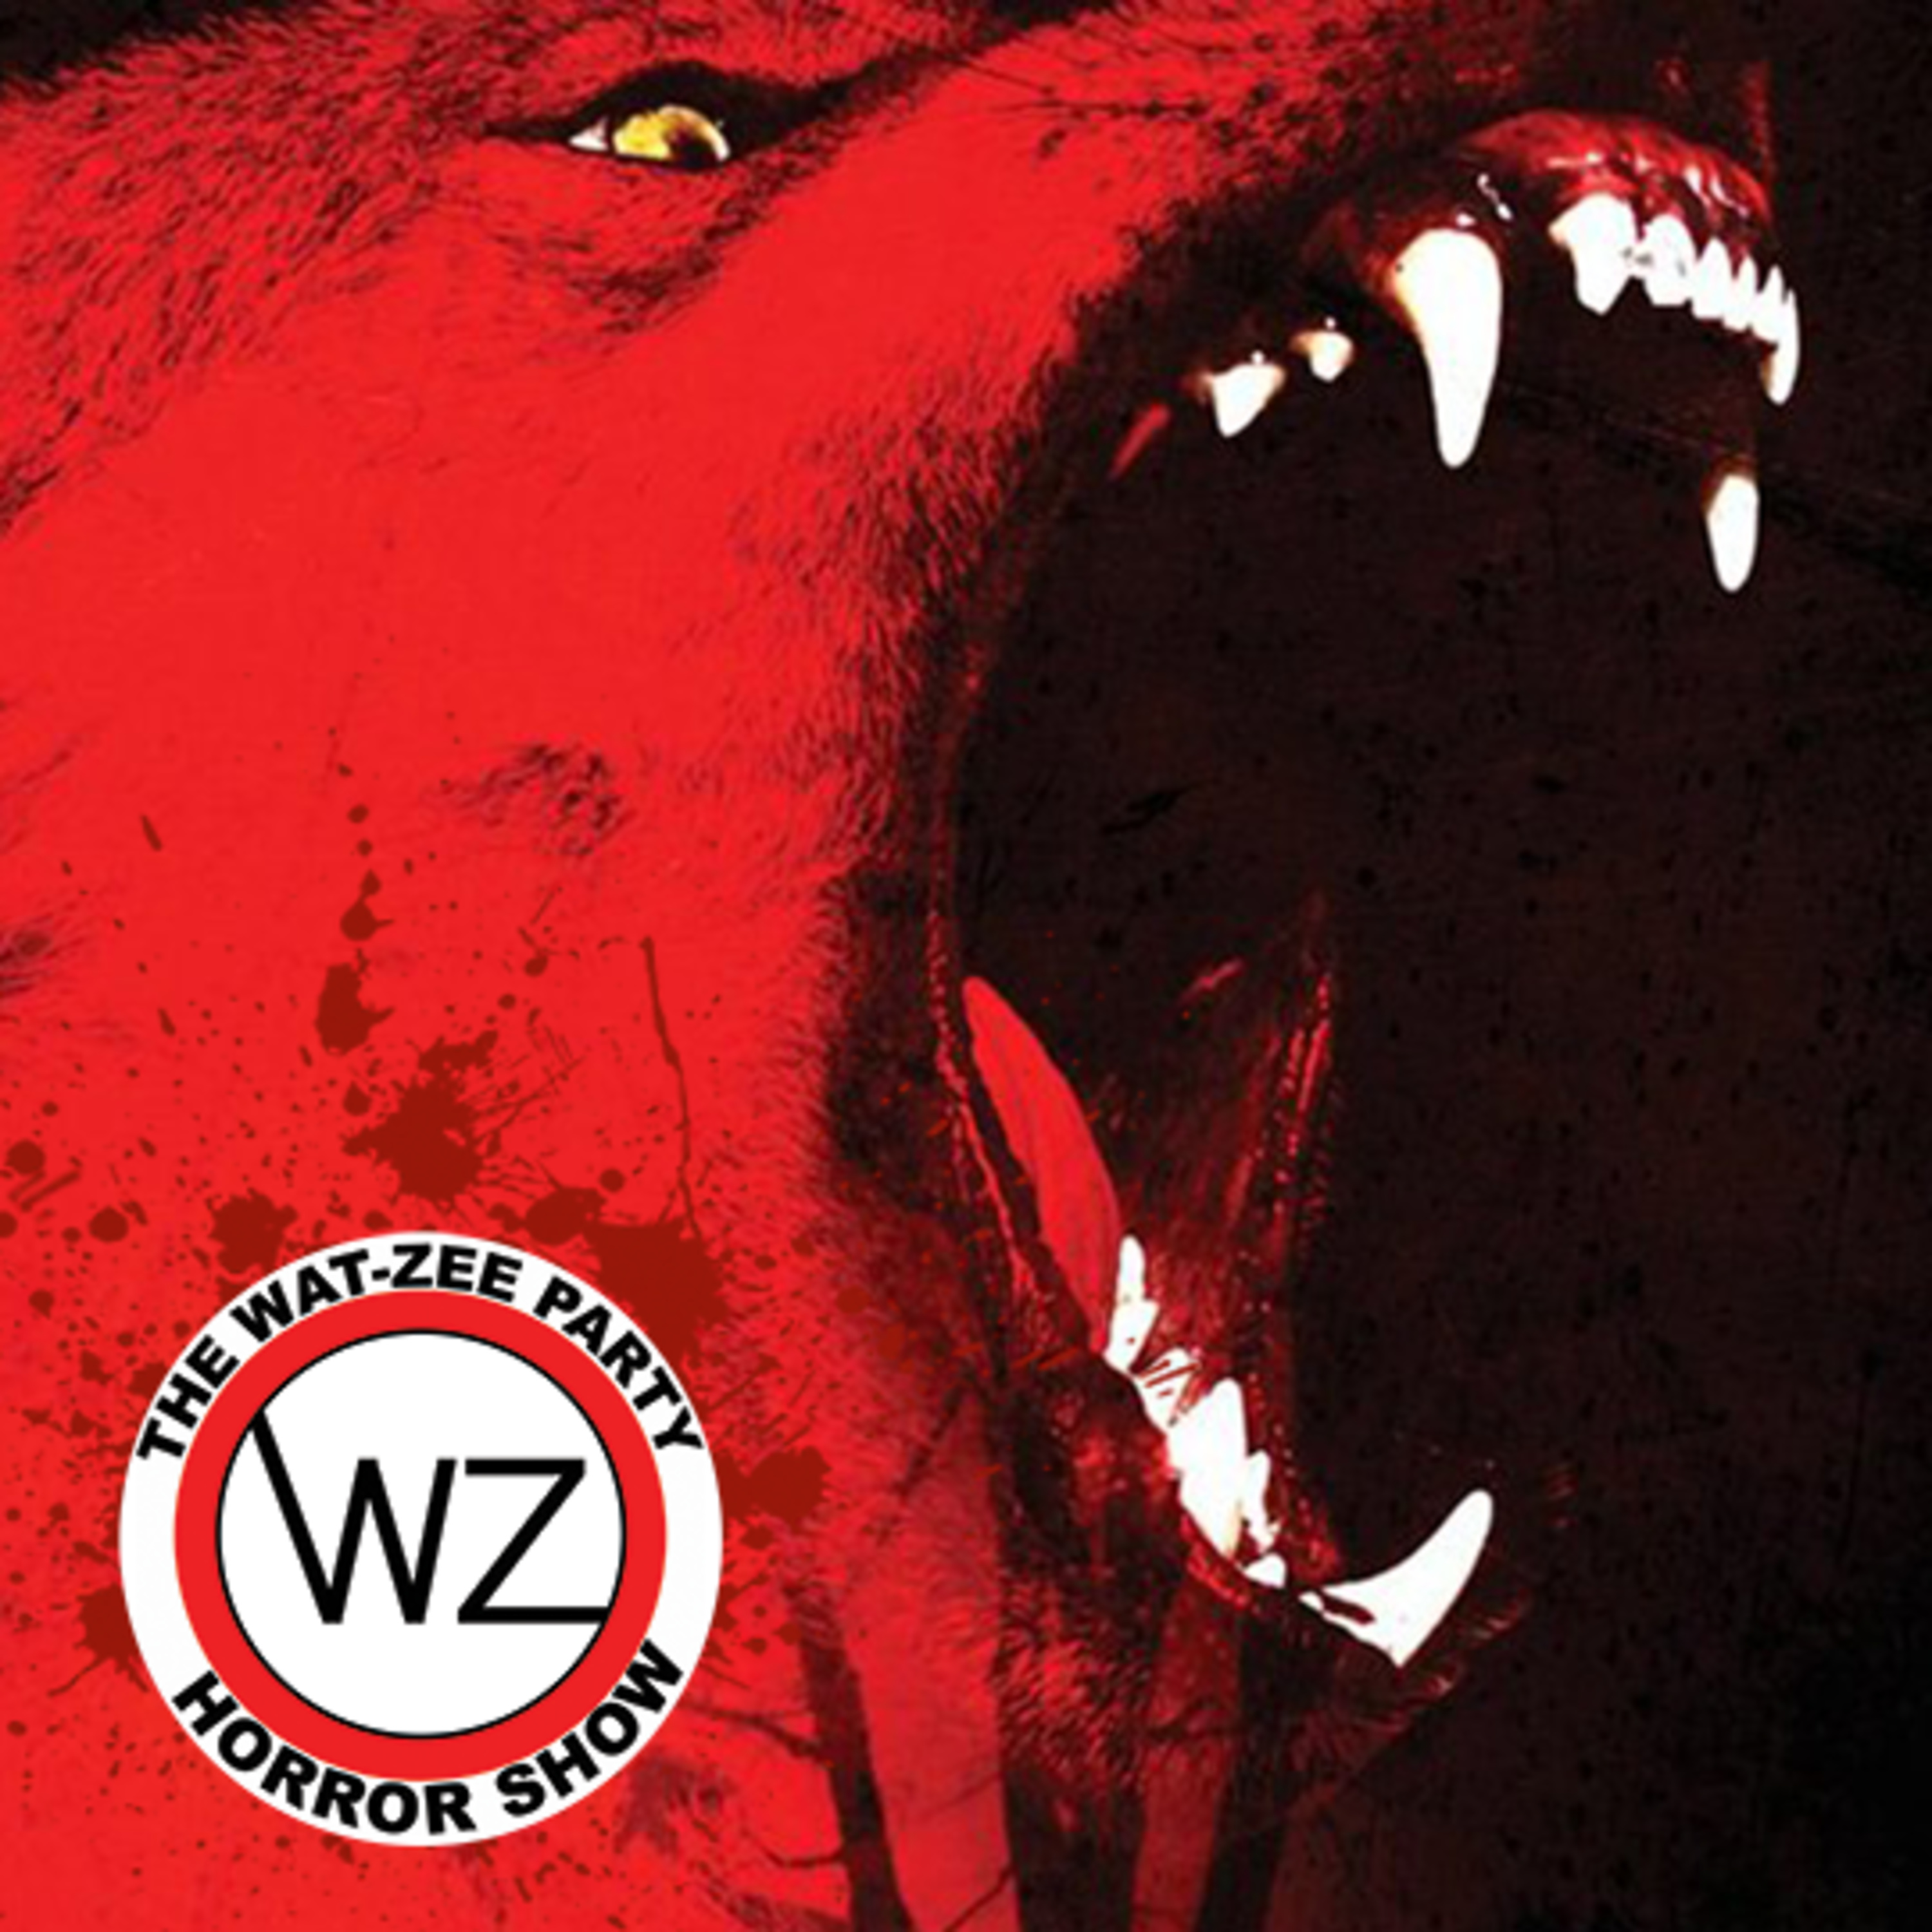 THE WAT-ZEE PARTY HORROR SHOW 016: Late Phases (2014)